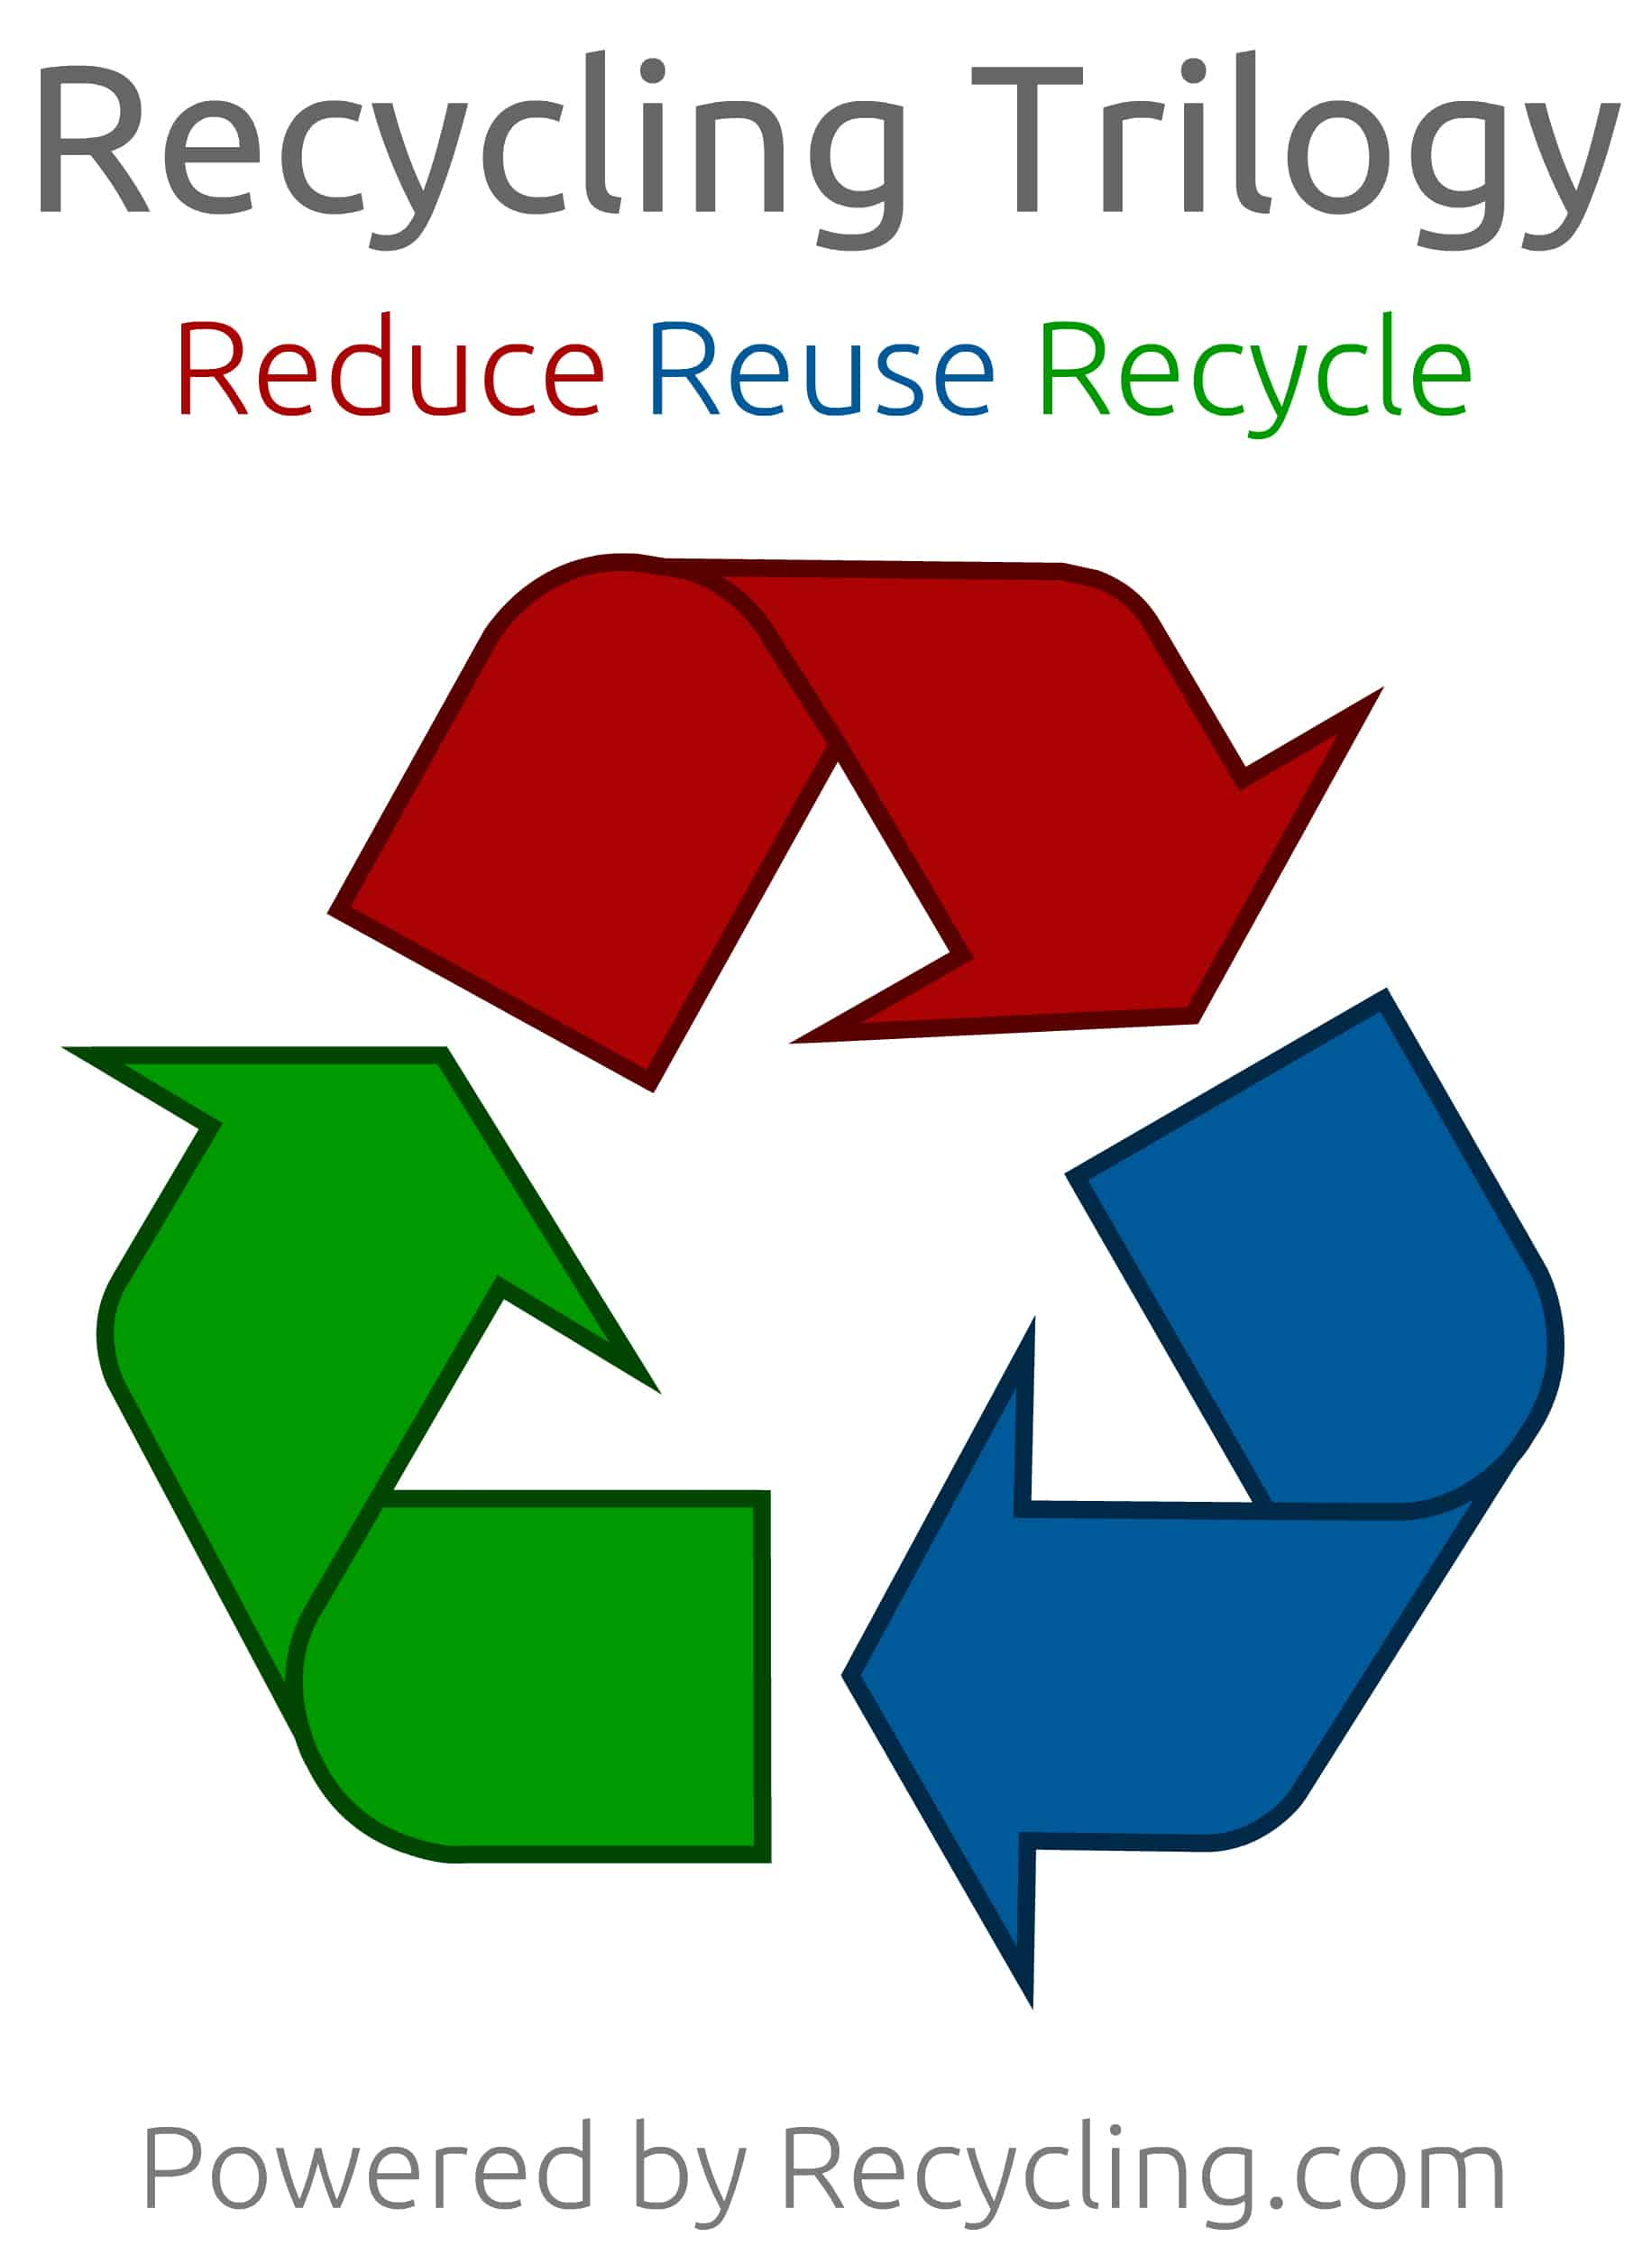 The Recycling Trilogy